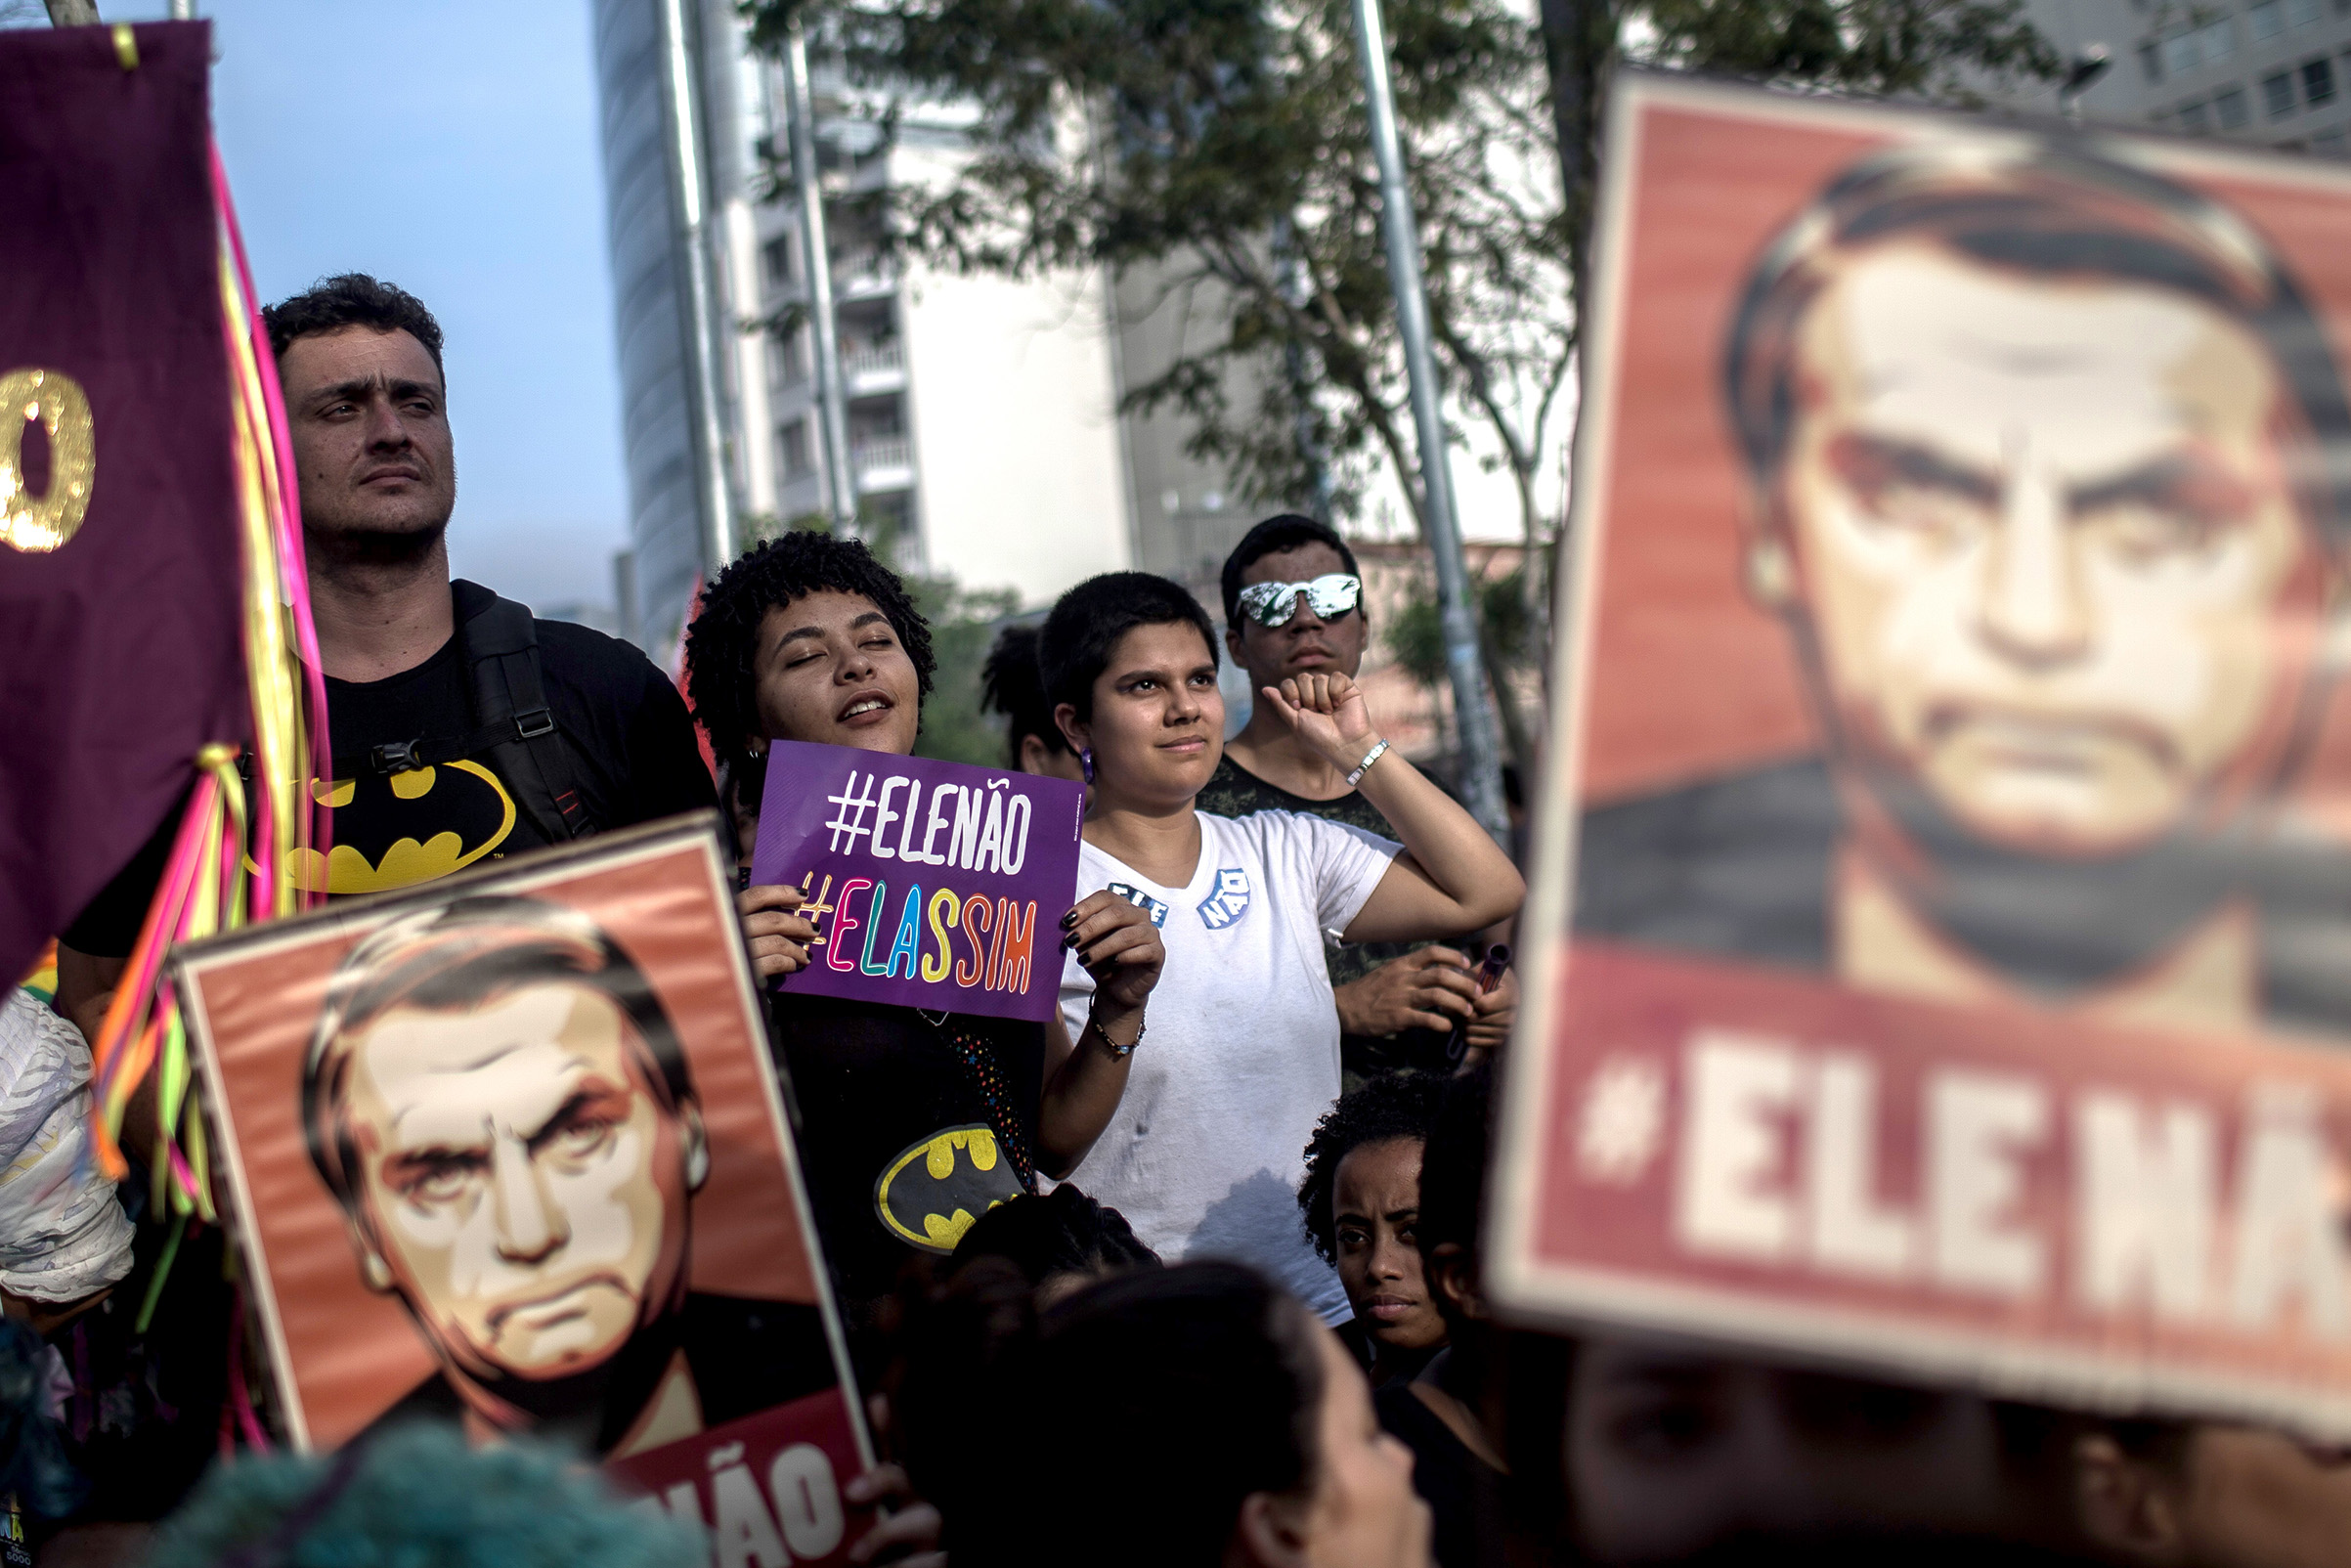 Protesters carry posters against the far-right's presidential candidate Jair Bolsonaro in Sao Paulo, Brazil on Sept. 29, 2018.